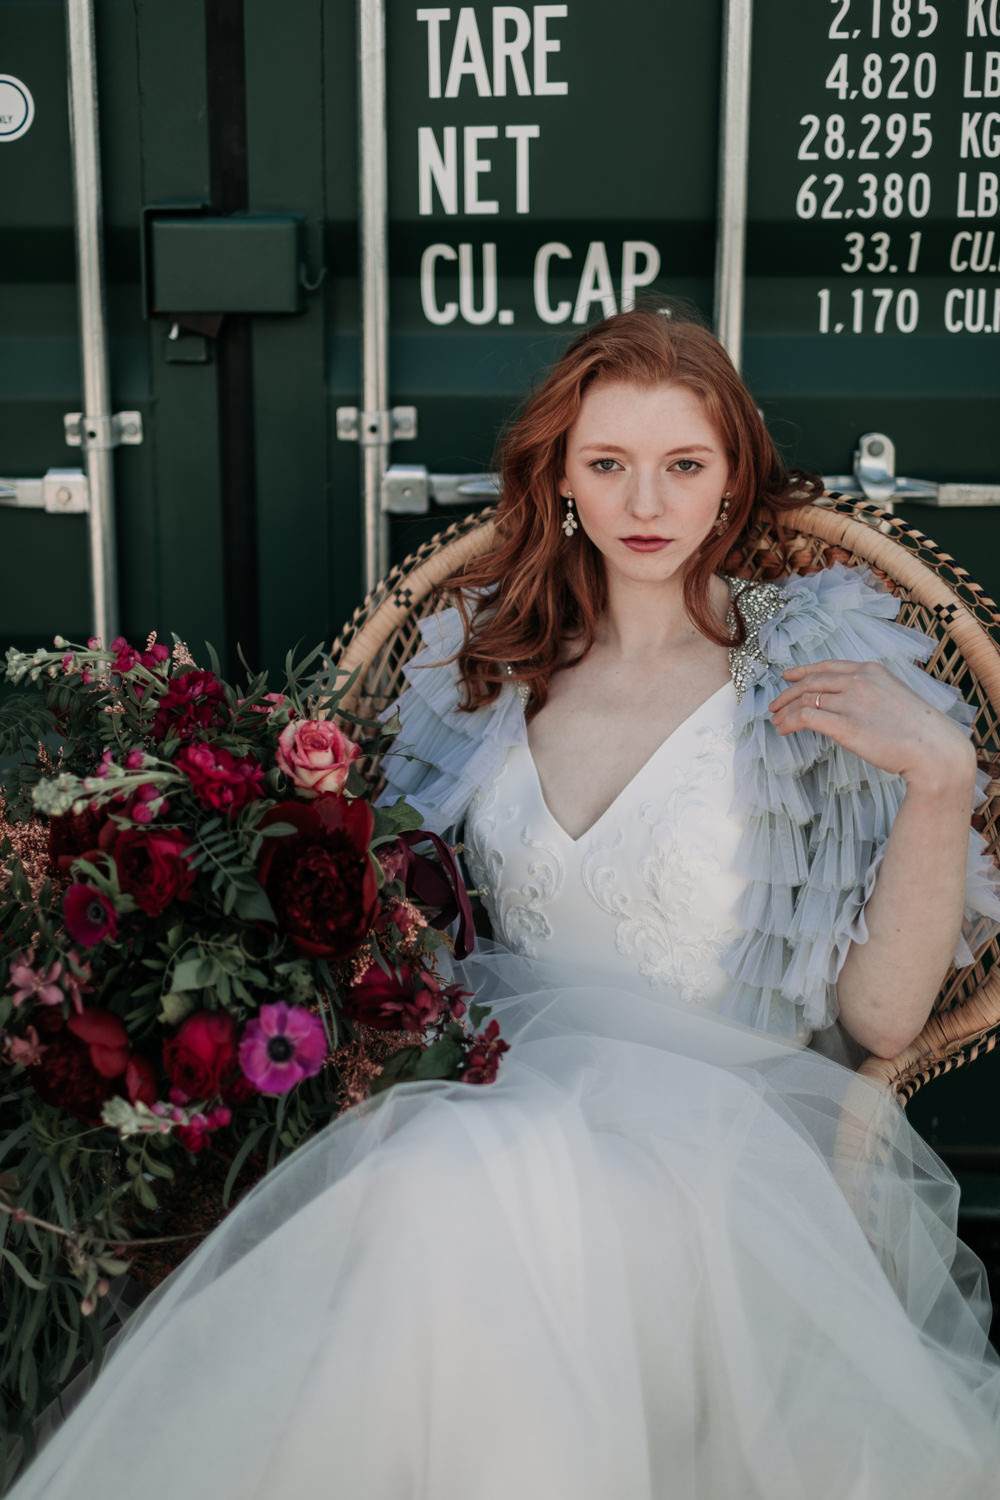 Bride Bridal Dress Gown Two Piece Seperates Skirt Top Tulle Ruffle Cover Up Jacket Grey Industrial Luxe Wedding Ideas Balloon Installation Ayelle Photography